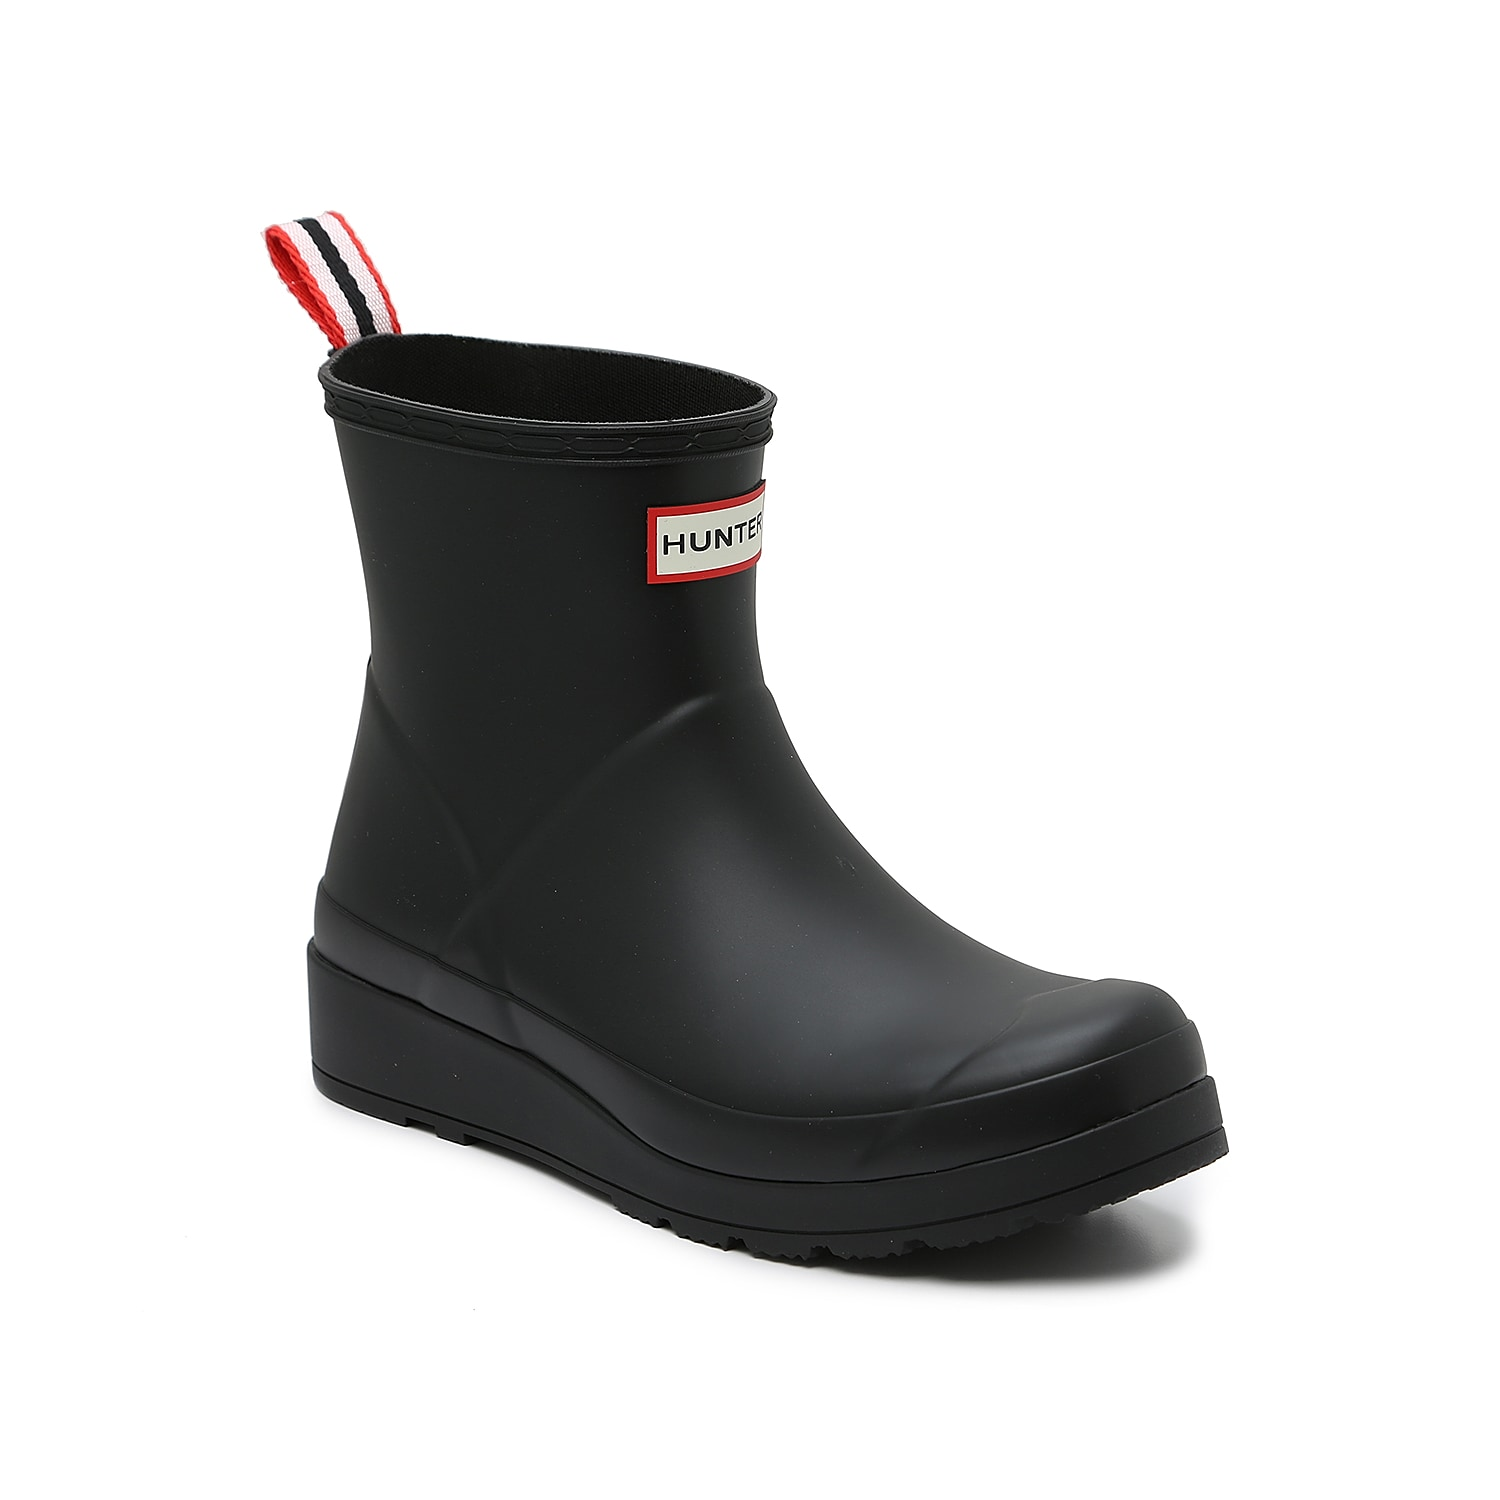 Simplifying the iconic Hunter design, the Original Play Short rain boot hits at the top of the ankle for stylish height that complements street fashion. A flatter sole provides maximum comfort and versatility.